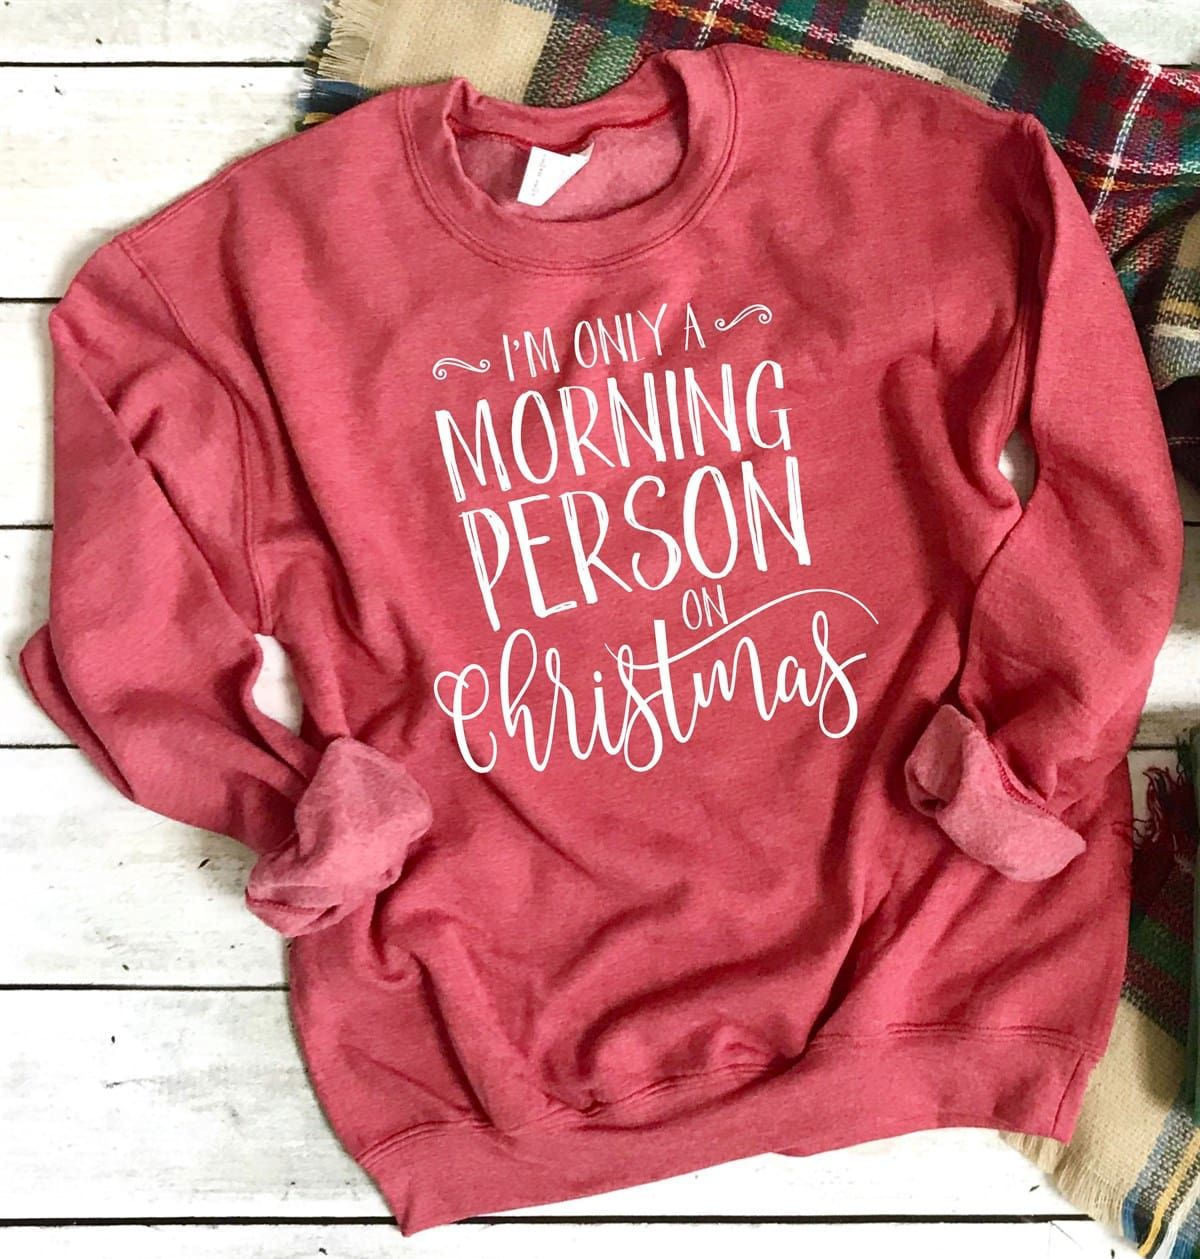 Soft and cozy holiday sweatshirts in graphic tees to please